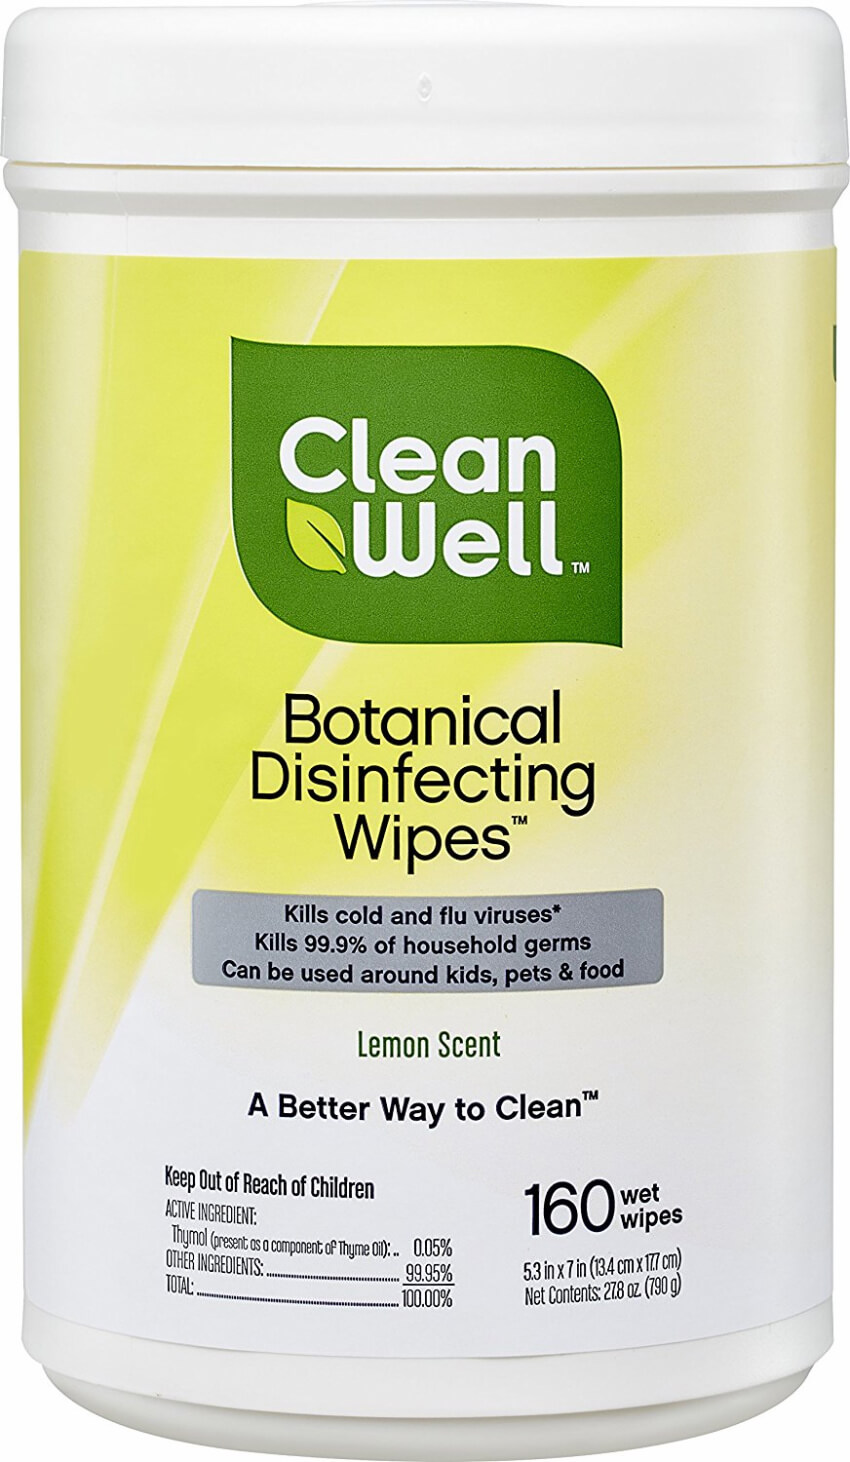 These disinfecting wipes can save you time and get everything clean without having to pull out all your cleaning supplies.